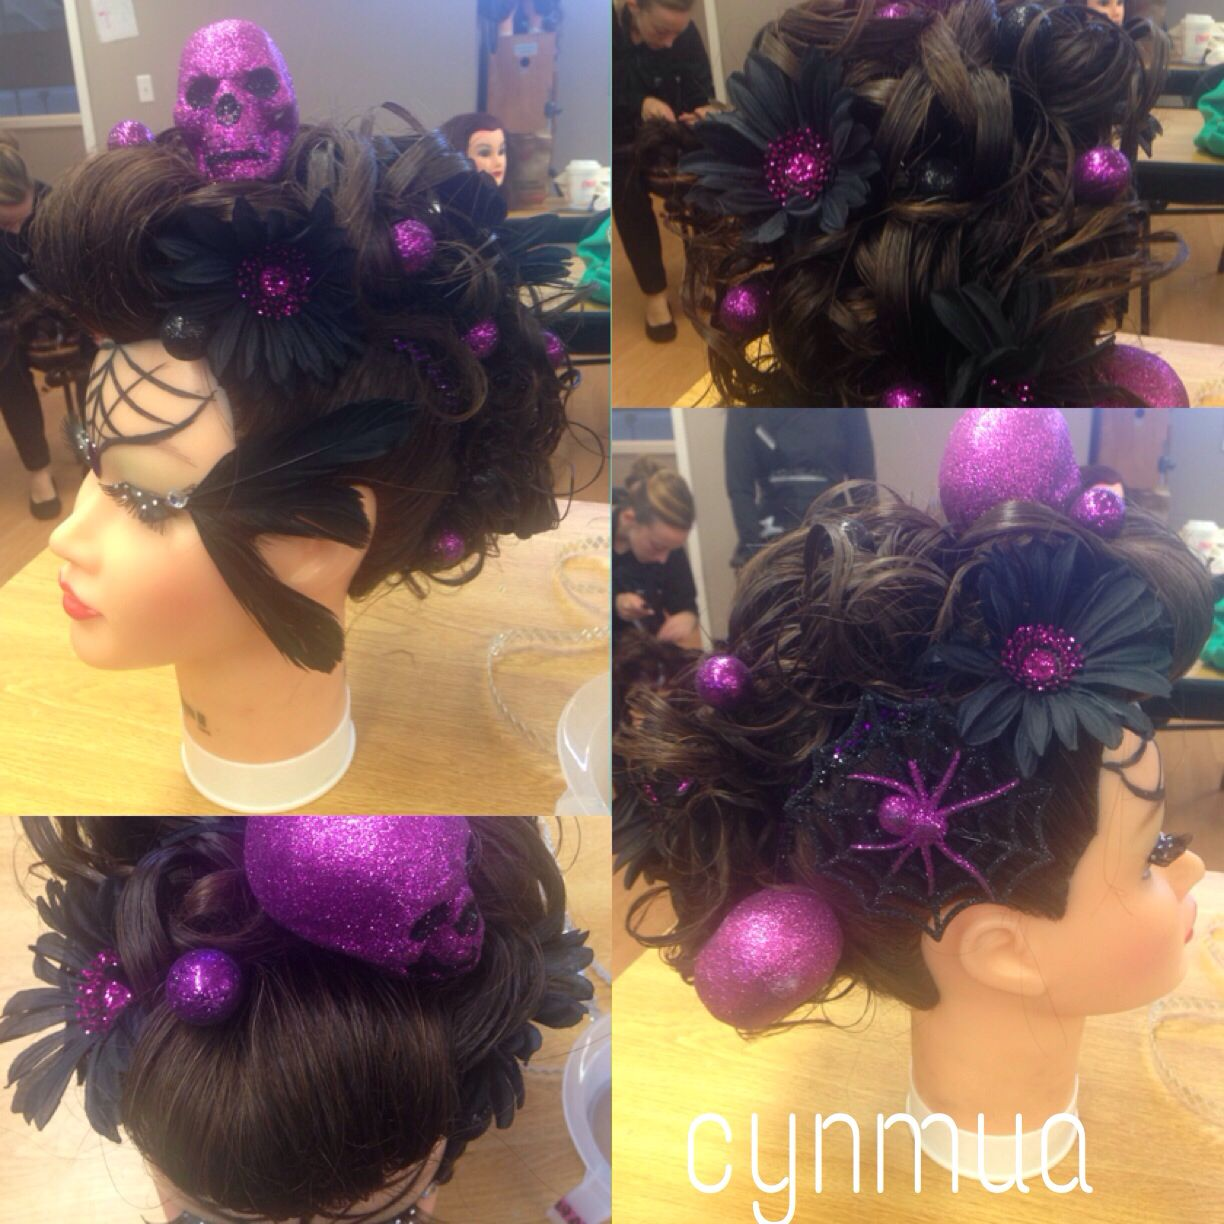 Beauty school halloween Hair competition elegant updo